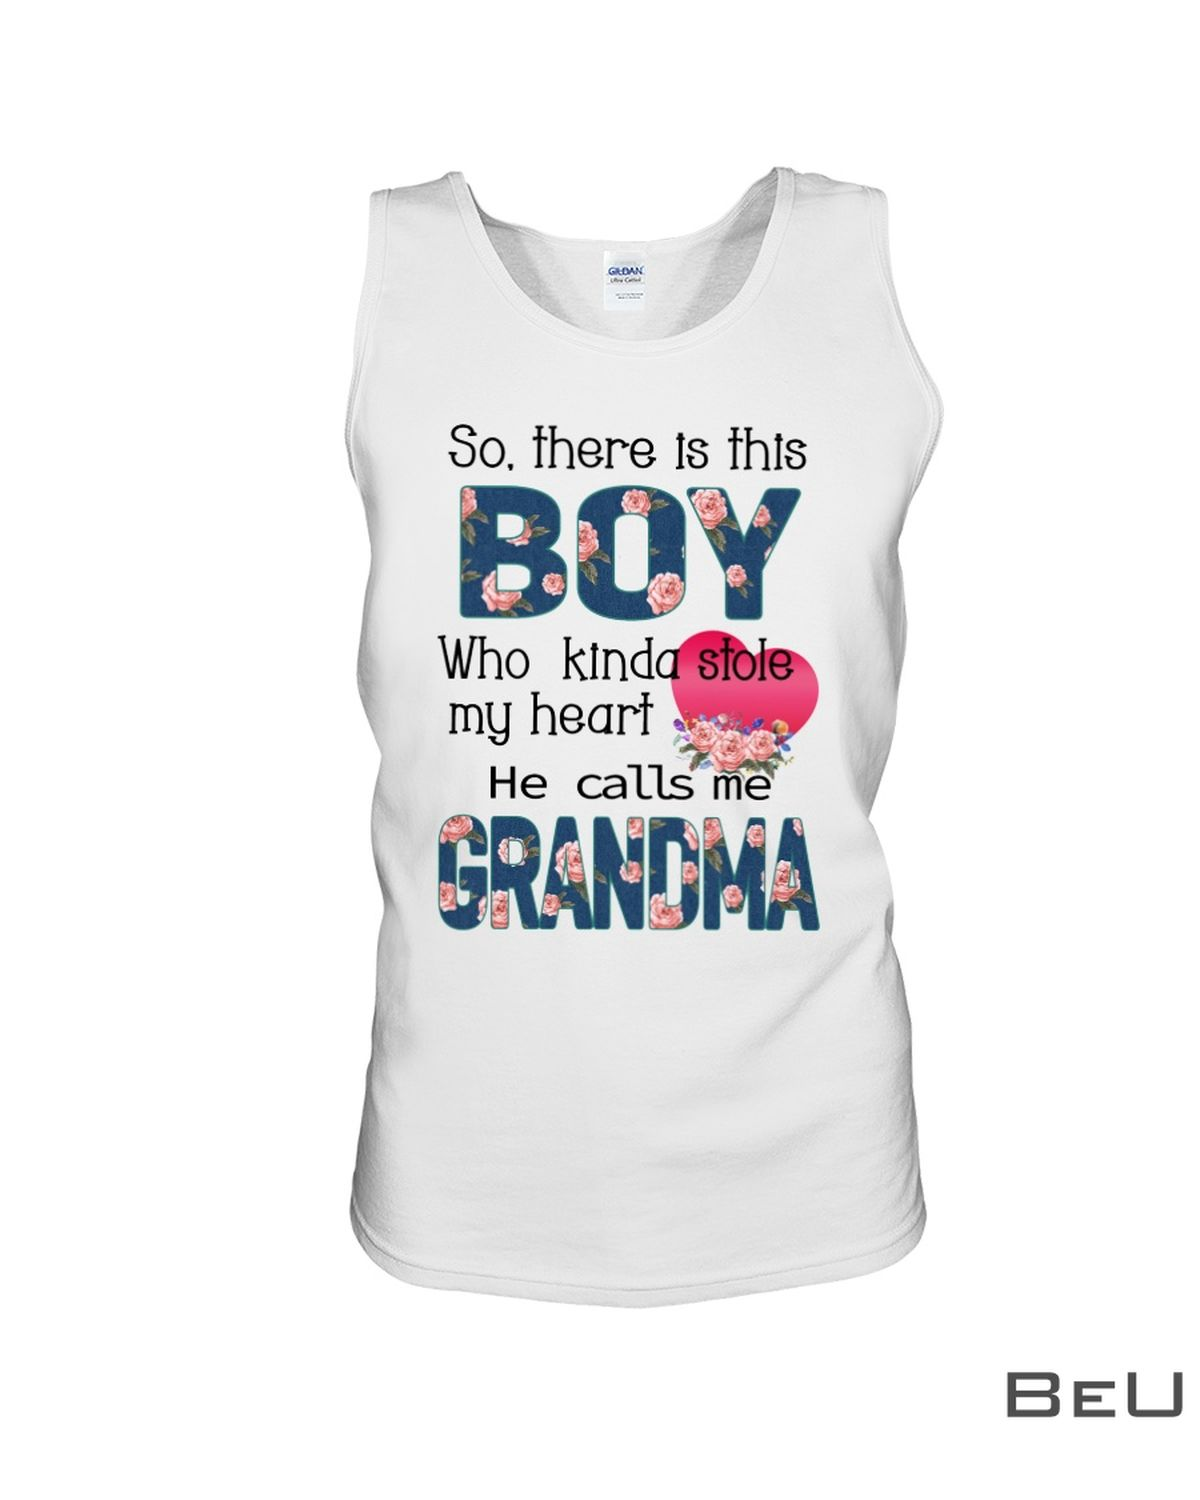 So There is this boy who kinda stole my heart He calls me Grandma shirtc